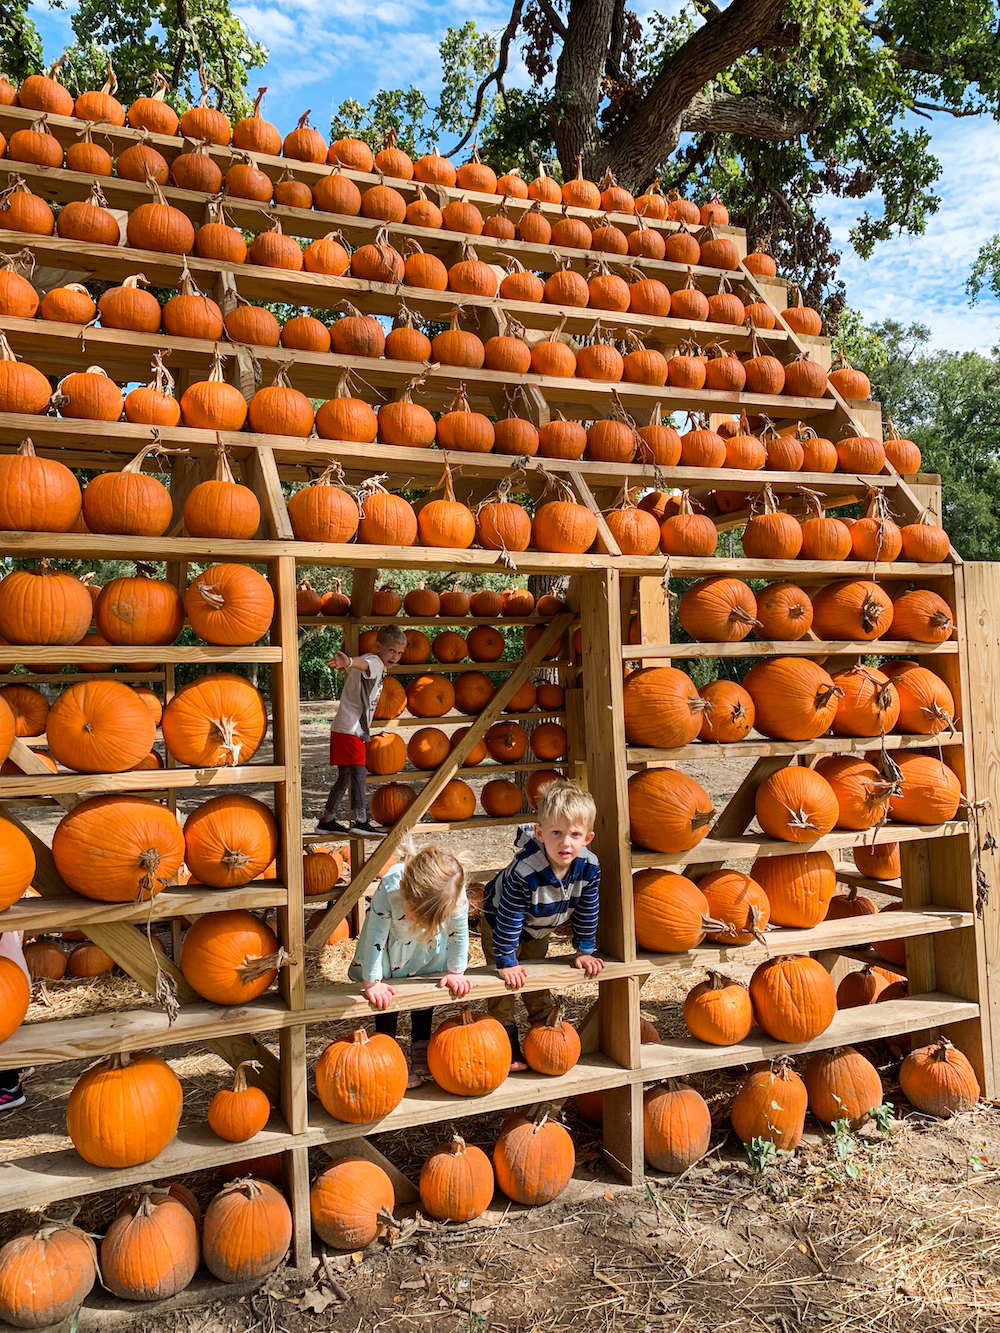 Austin pumpkin patch, Austin pumpkins, Austin fall fest, Georgetown Texas, Georgetown pumpkin patch, north Austin pumpkin patch, sweet eats fruit farm, sweet eats pumpkin patch, sweet eats fruit farm, round rock pumpkin patch, Georgetown pumpkin patch, sweet eats farm, Jesse Coulter blog, Texas travel blog, Texas travel blogger, Austin family blog, Austin mom blog, Austin mom blogger, Texas mom blogger, Austin kid activities